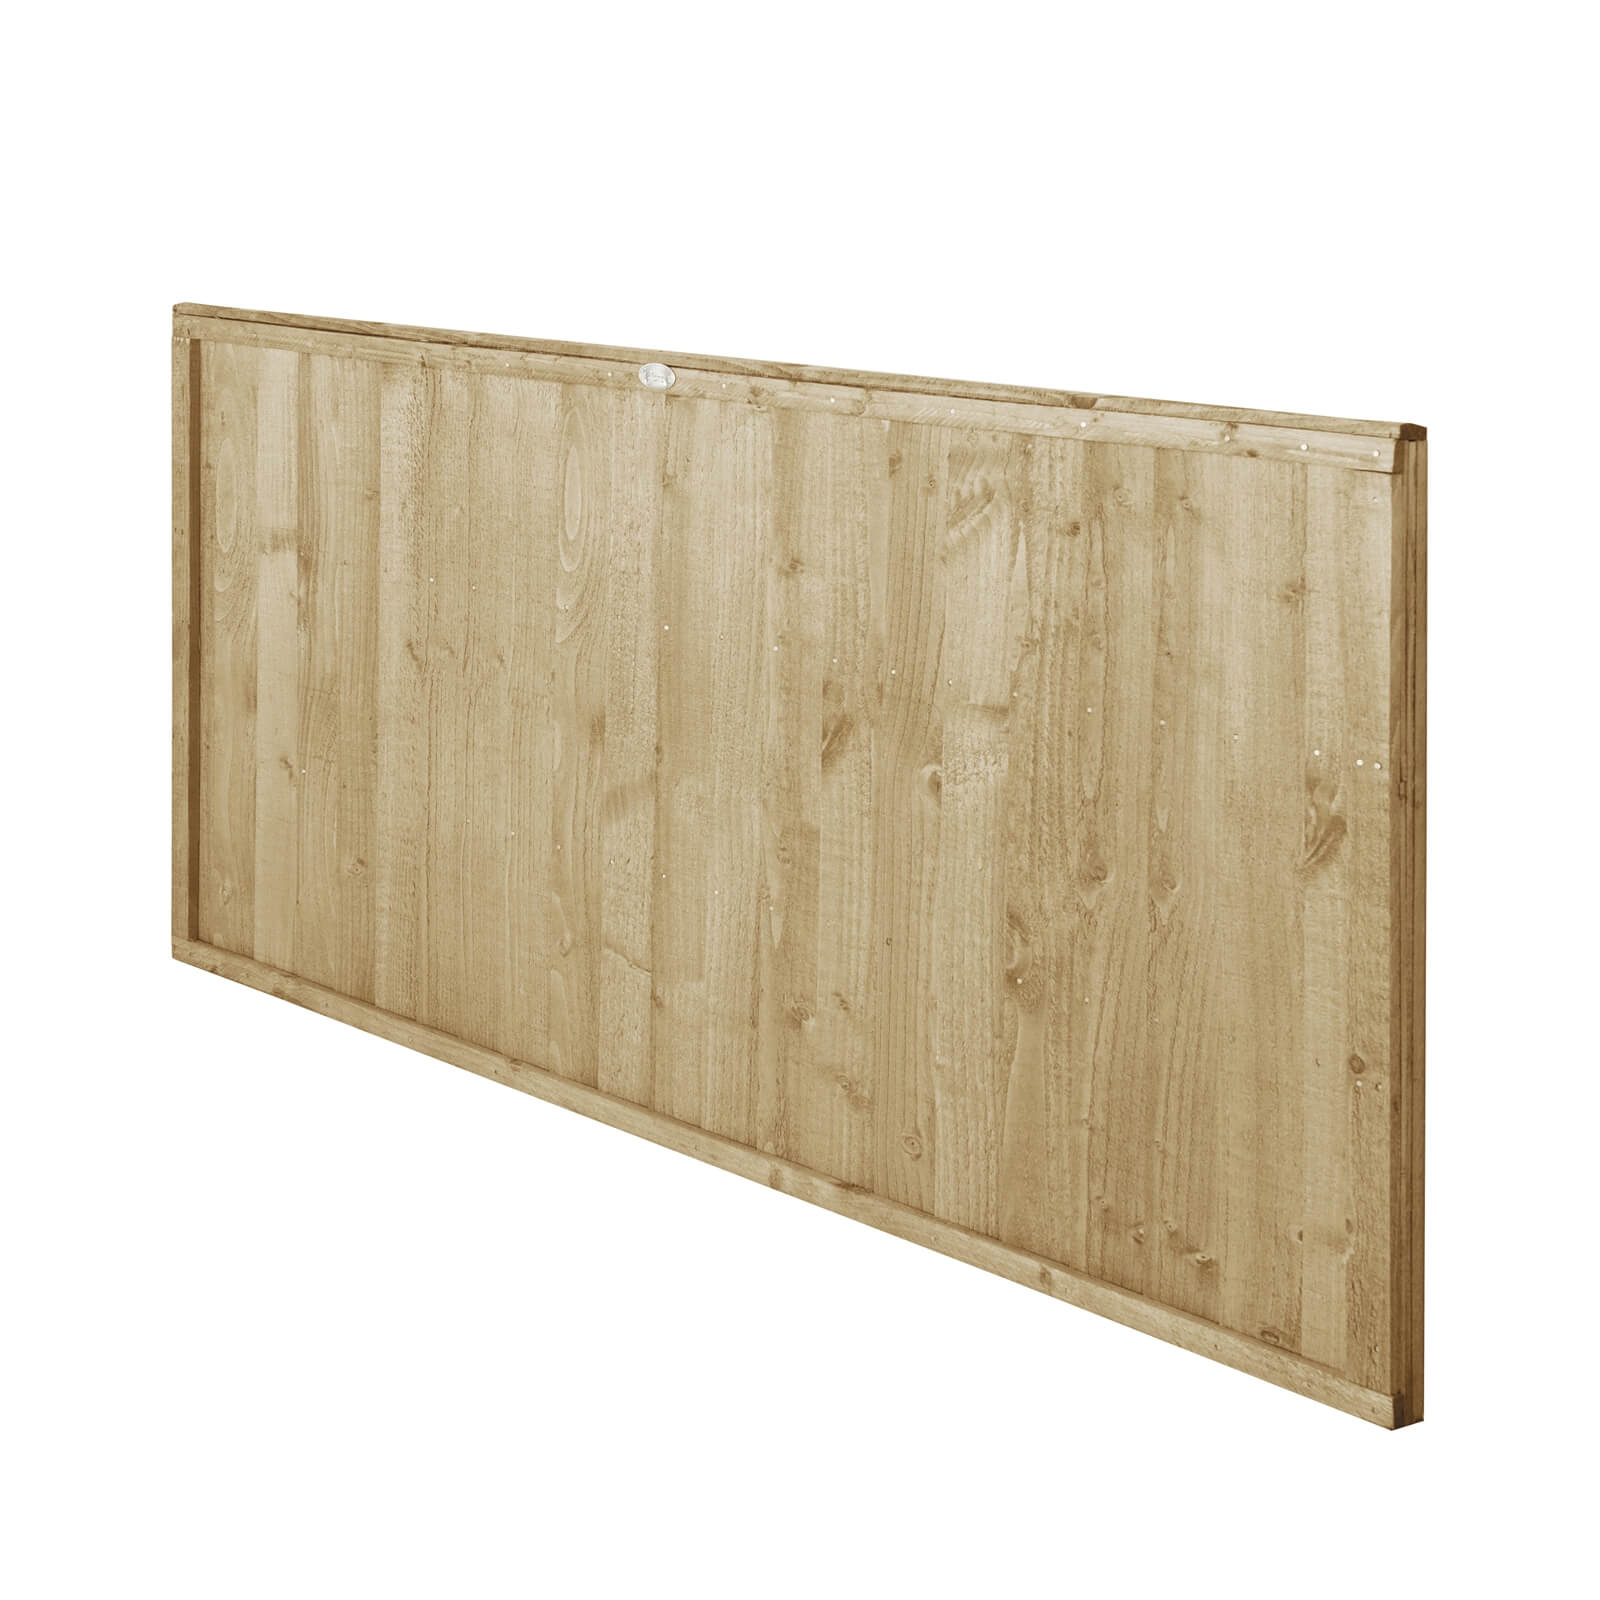 6ft x 3ft (1.83m x 0.91m) Pressure Treated Closeboard Fence Panel - Pack of 3